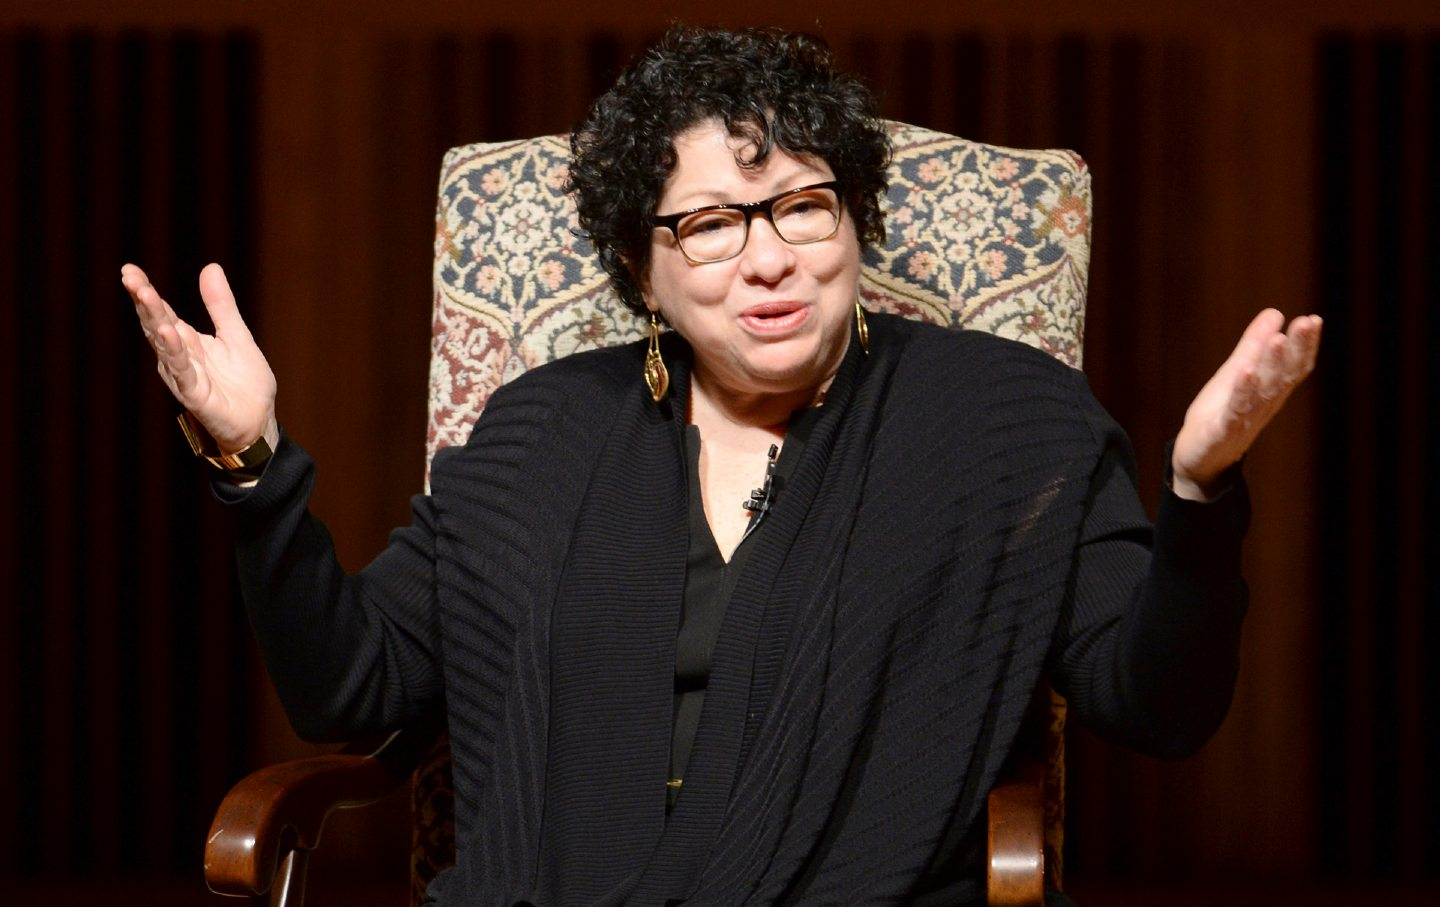 Sonia Sotomayor Just Issued a Serious Warning About the Supreme Court